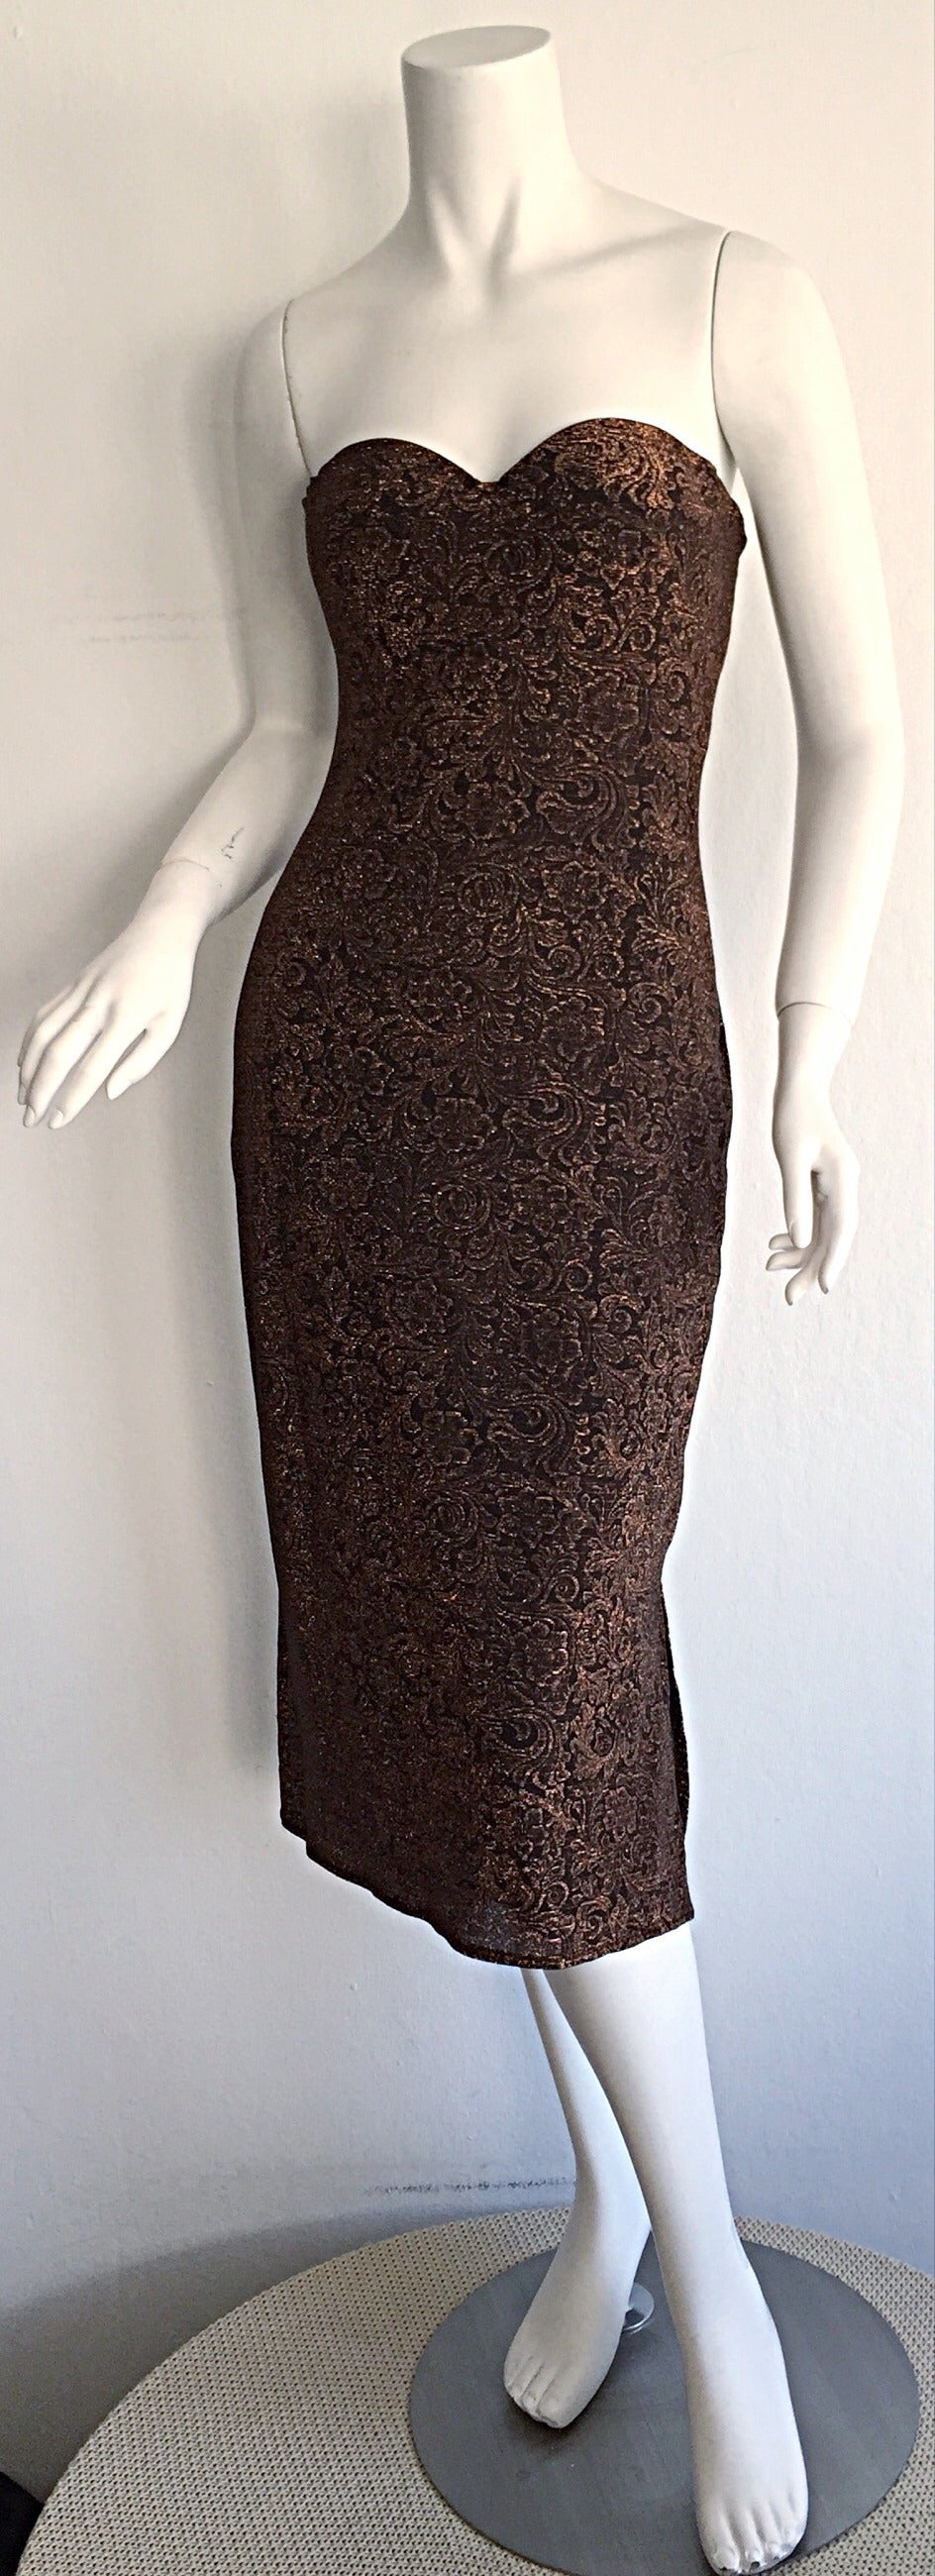 Women's Beautiful Vintage Casadei Bronze Intricate Metallic Dress w/ Convertible Straps For Sale